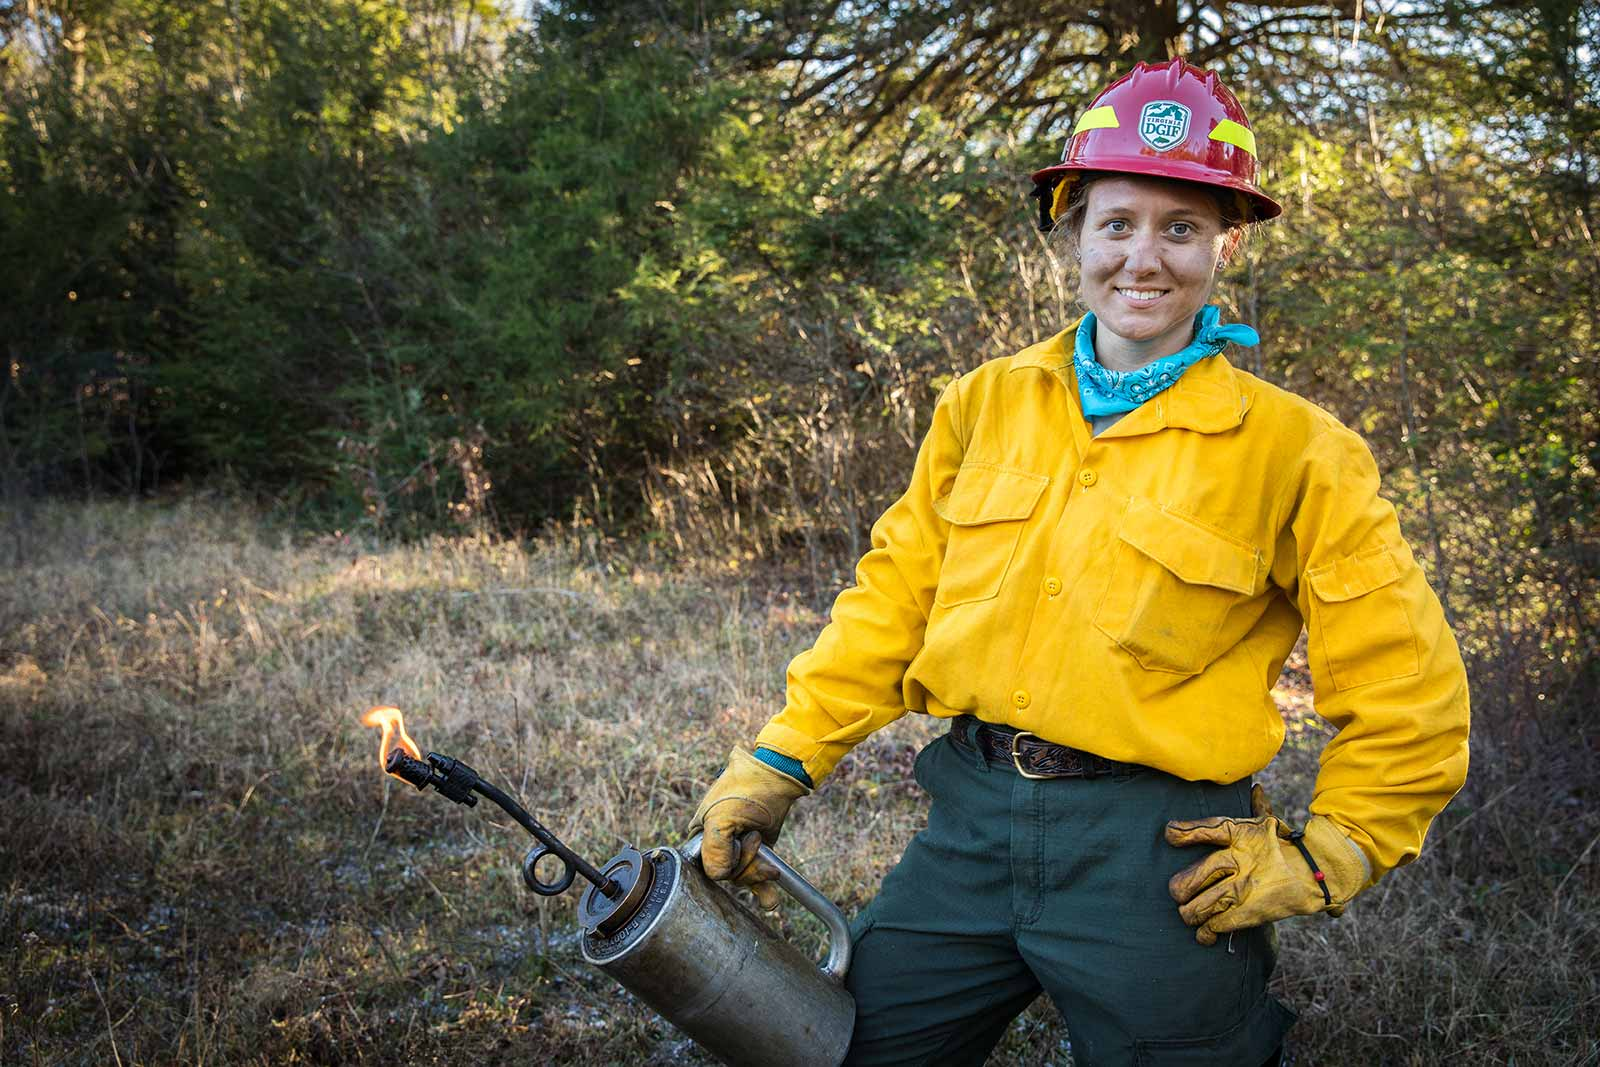 A fire crew member poses with a drip torch.